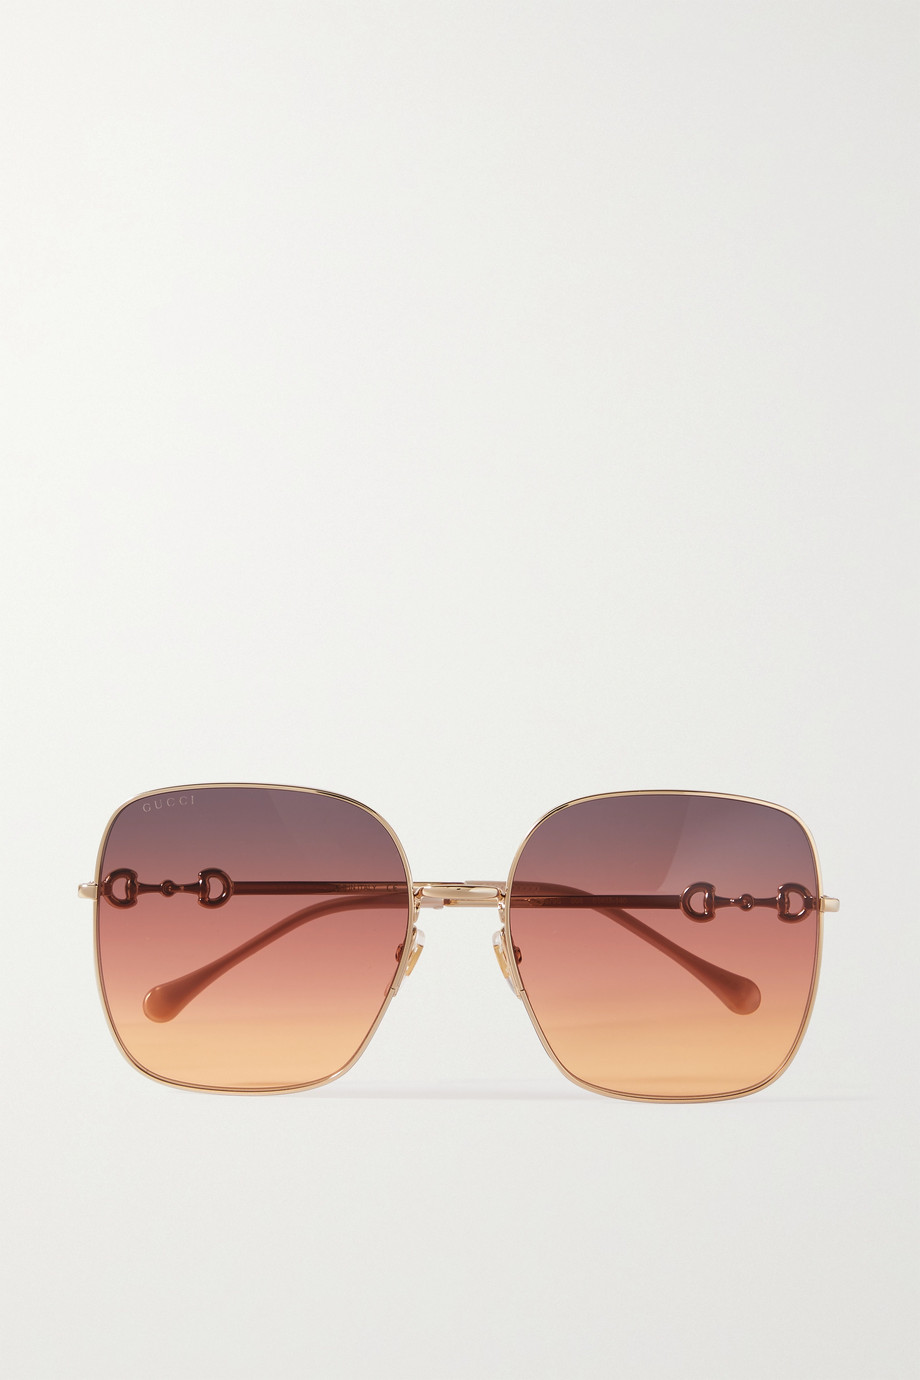 GUCCI Square-frame gold-tone sunglasses